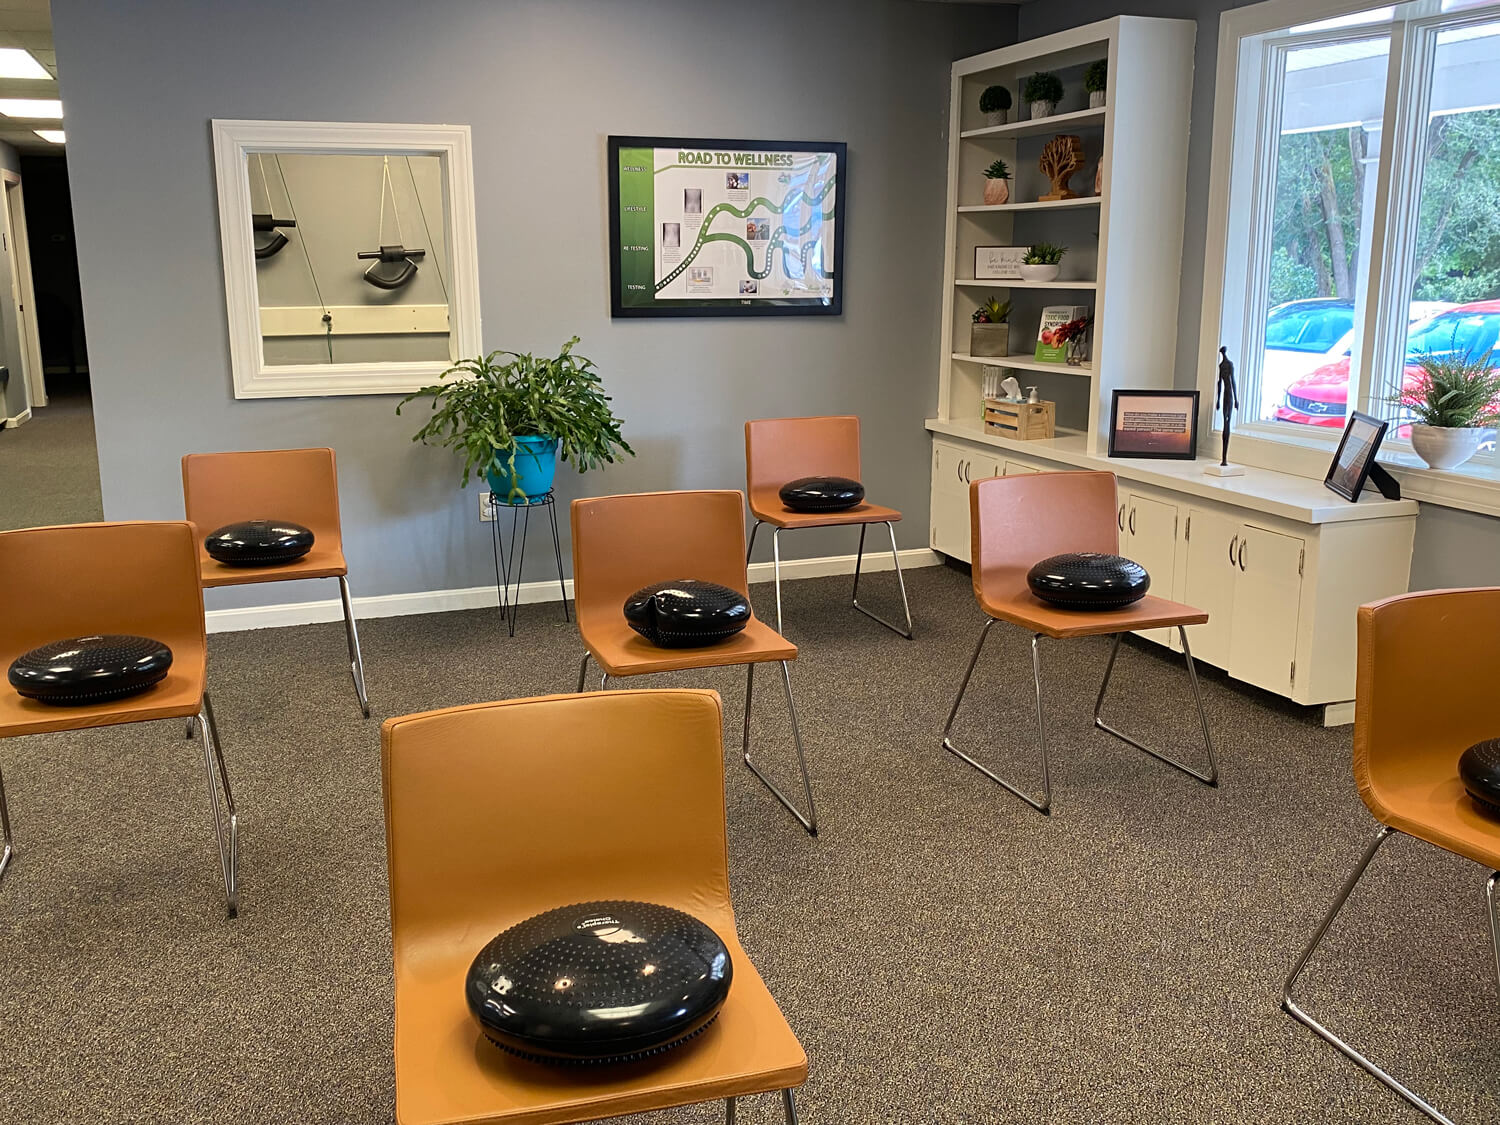 Ciccone Family Chiropractic and Wellness Center Room